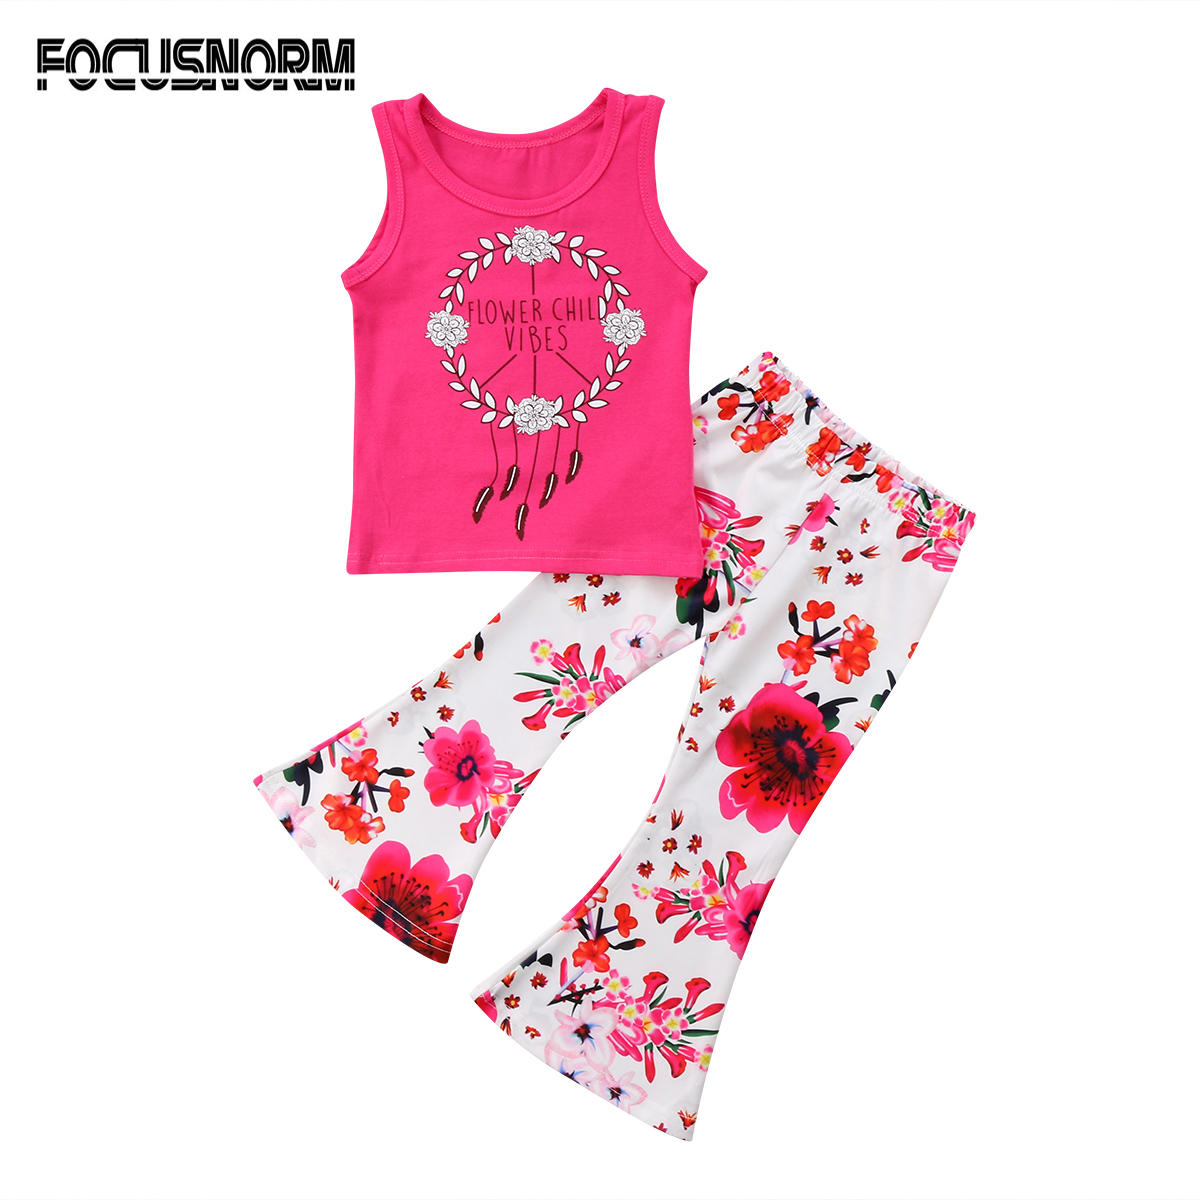 Baby Girls Kids Toddler Girls Printed Sleeveless T-shirt Tops+Floral Long Pants Outfit Clothes 2Pcs infant toddler kids baby girls summer outfit cotton striped sleeveless tops dress floral short pants girls clothes sunsuit 0 4y